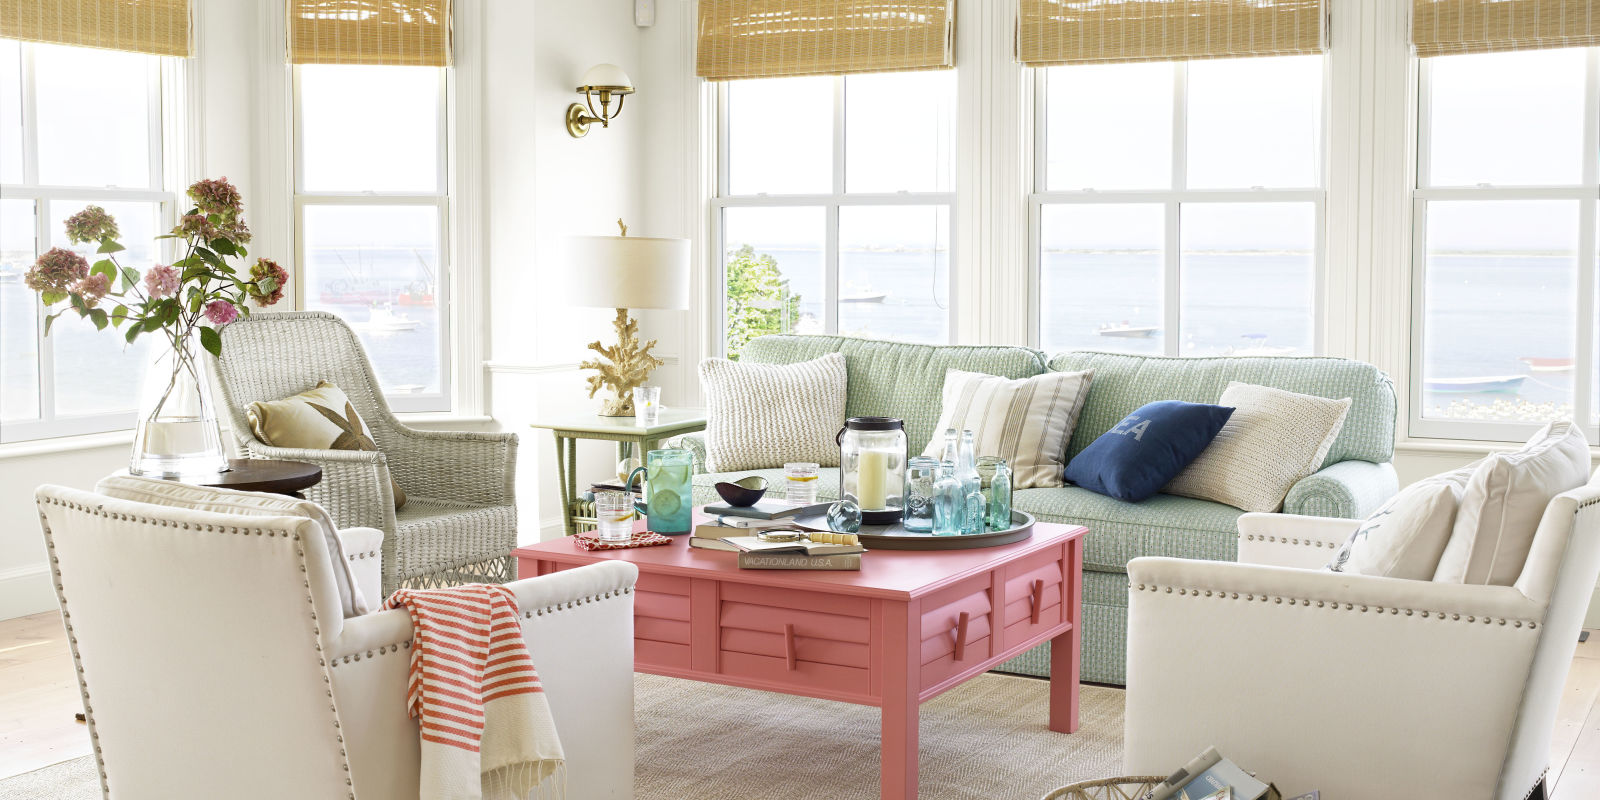 Beach Decor Ideas 40 Beach House Decorating  Beach Home Decor Ideas